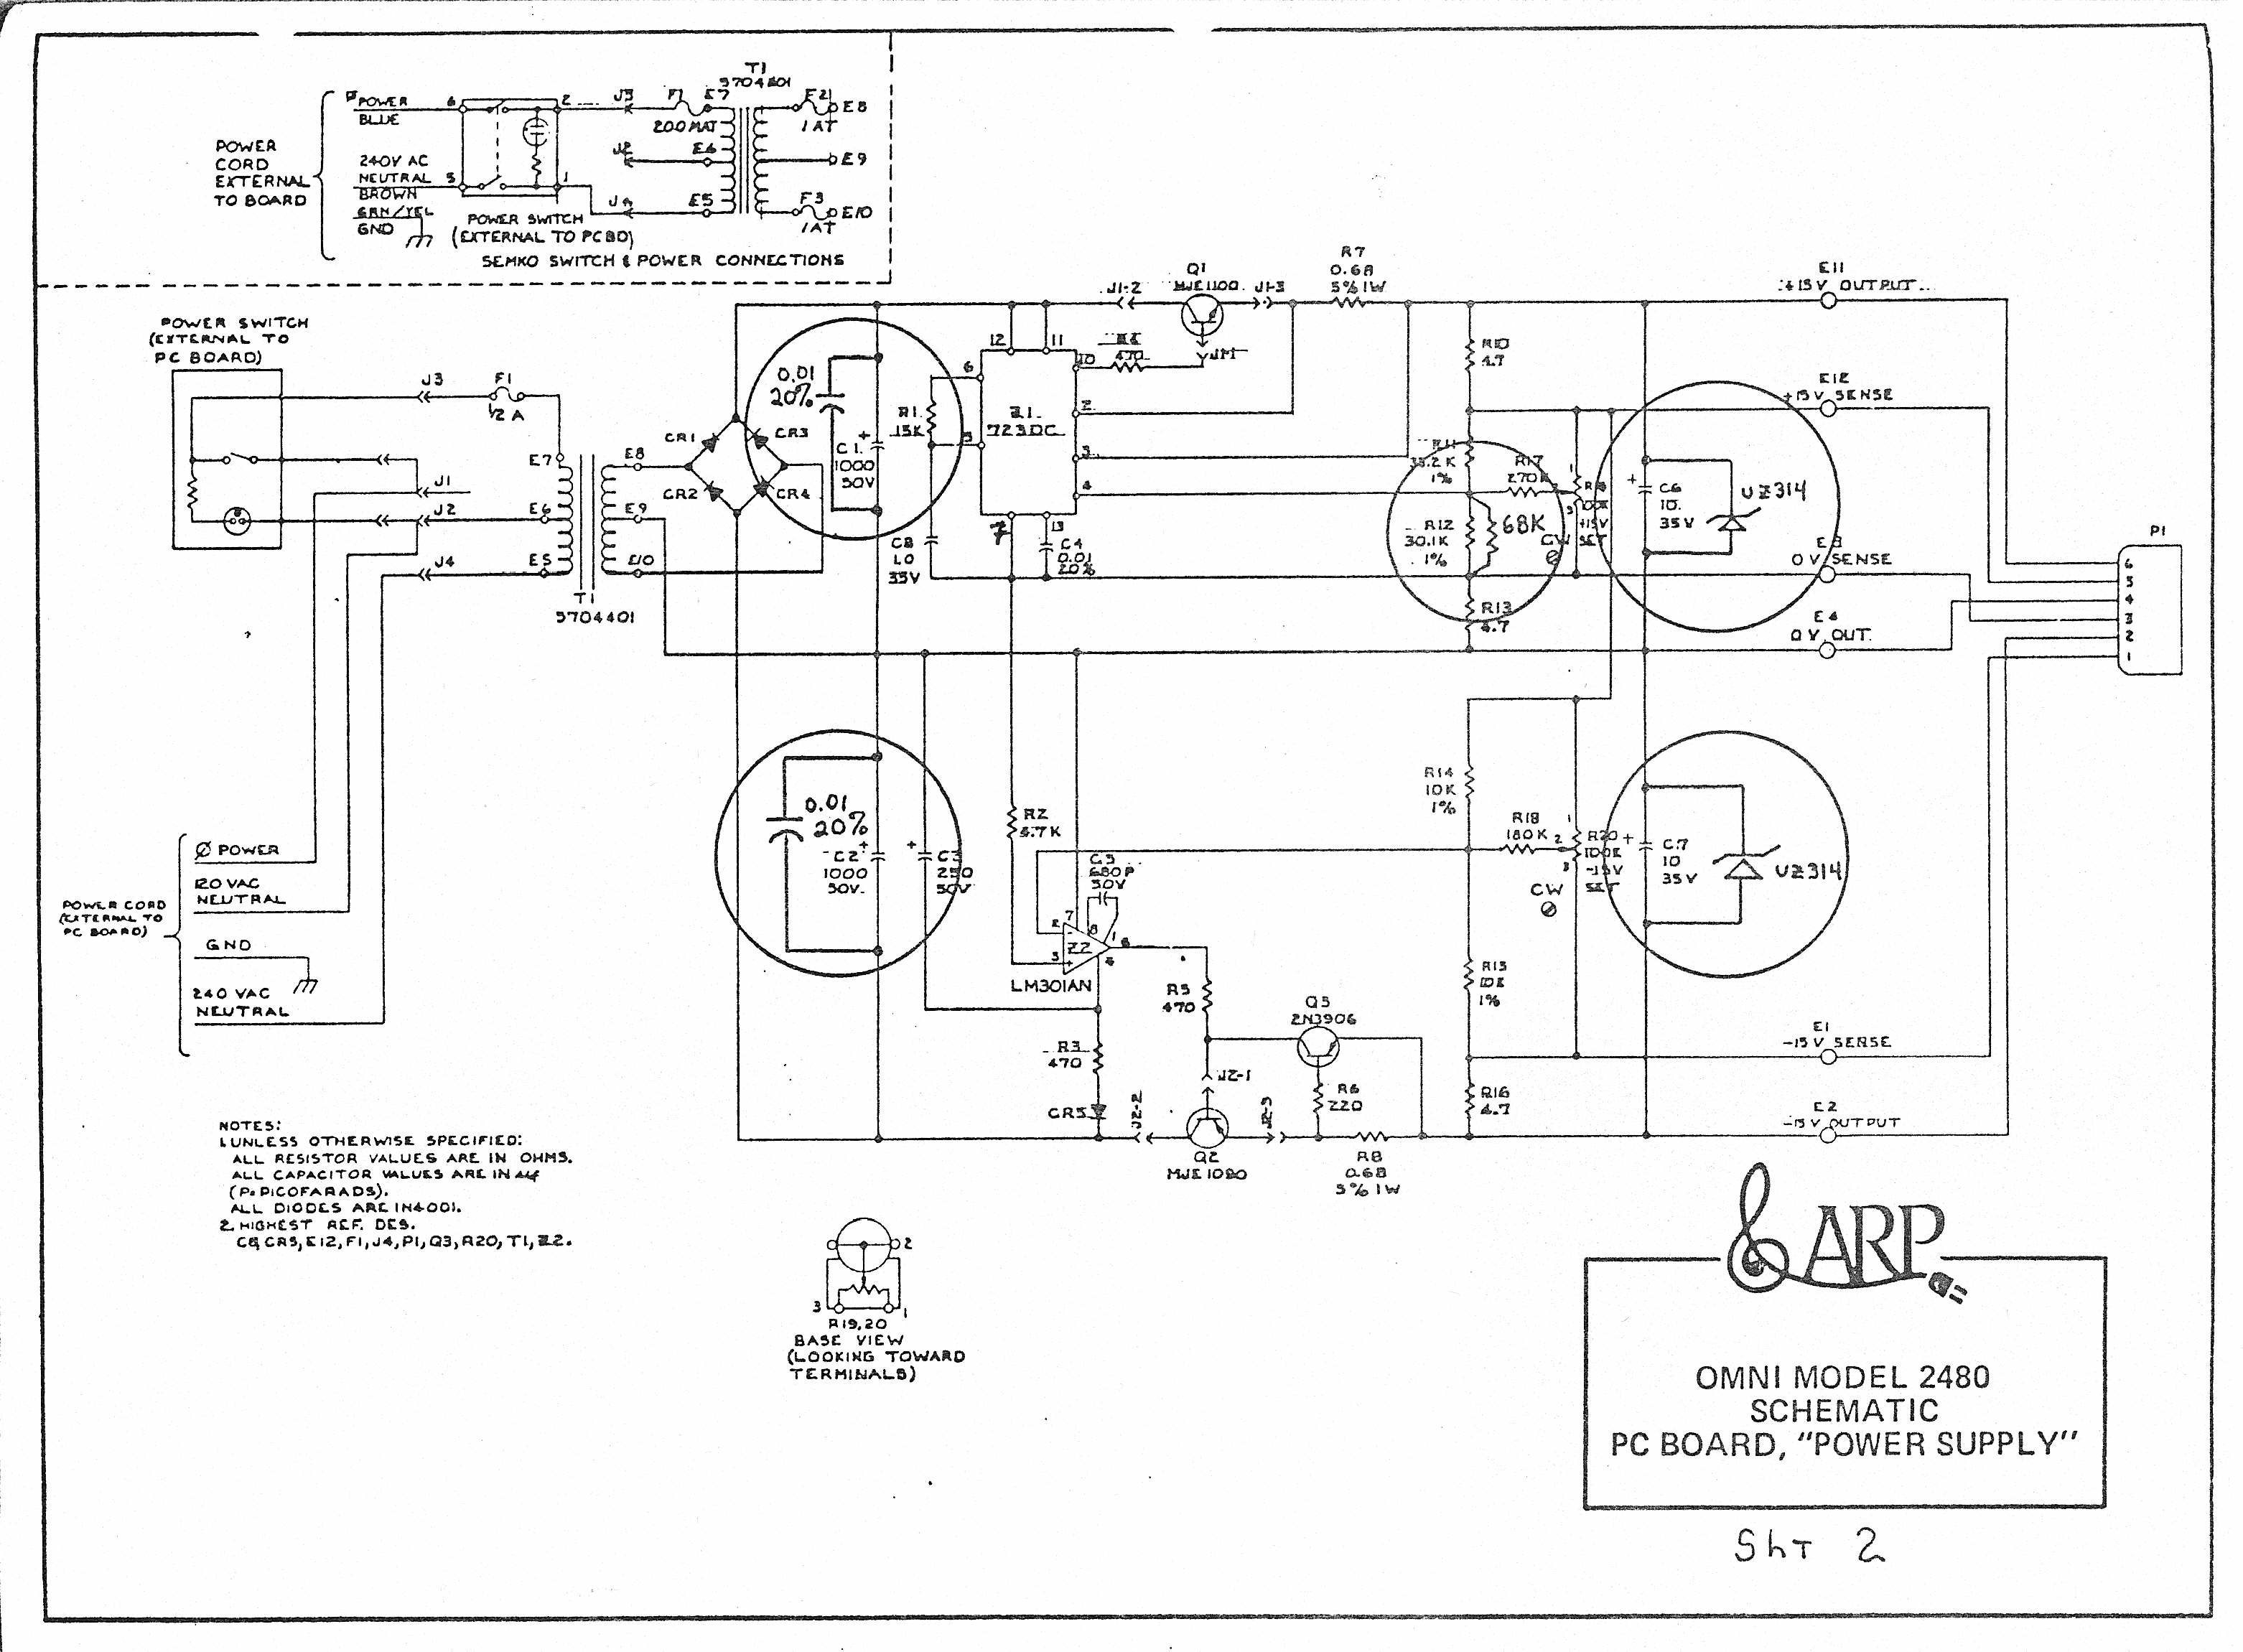 A 50 Amp Disconnect Wiring